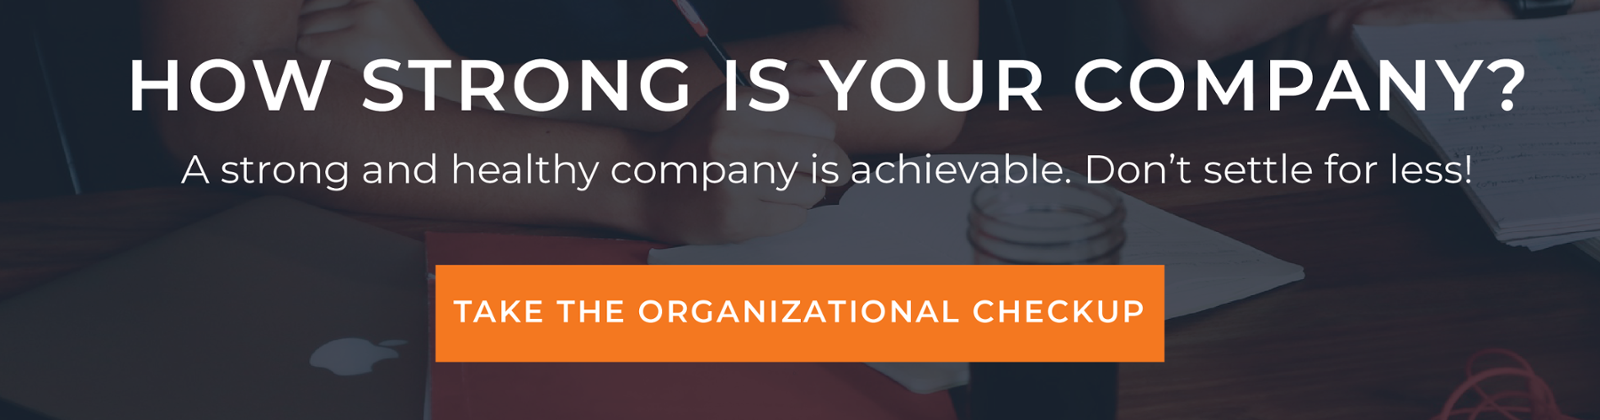 How strong is your company? Find out with our organizational checkup. Click here to get started!